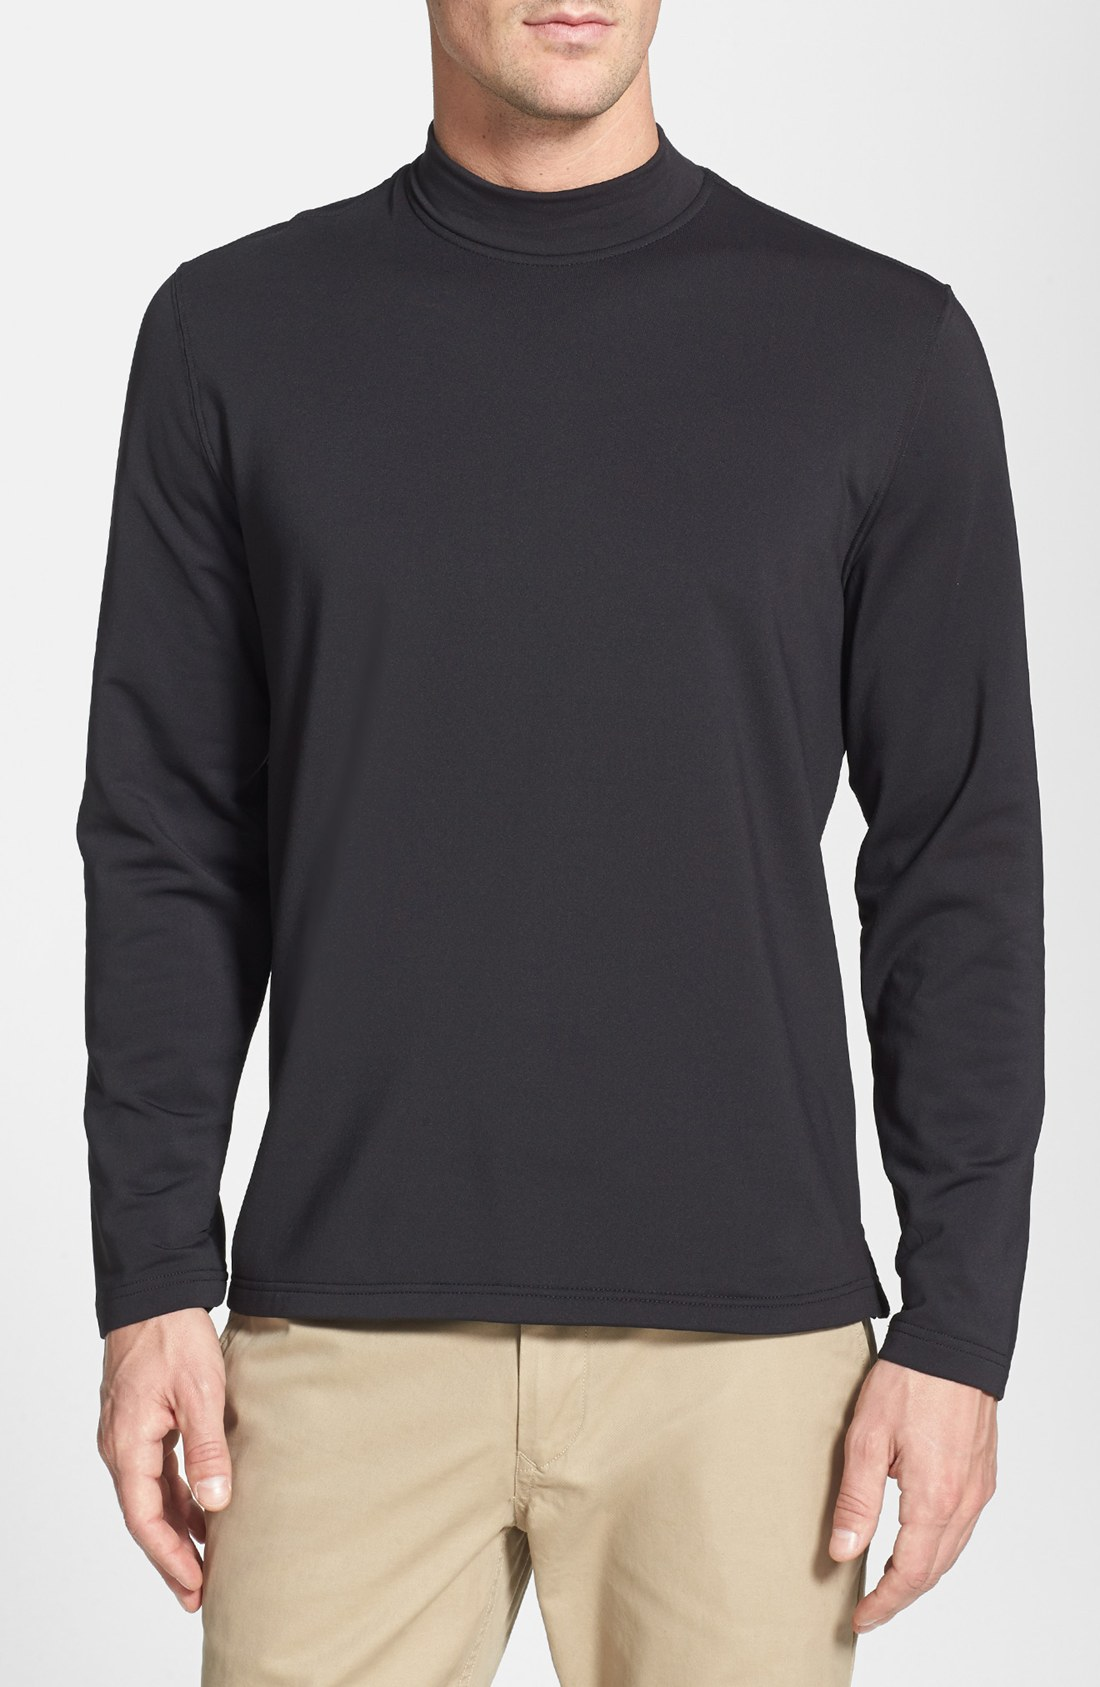 bobby jones mock neck long sleeve shirt in black for men